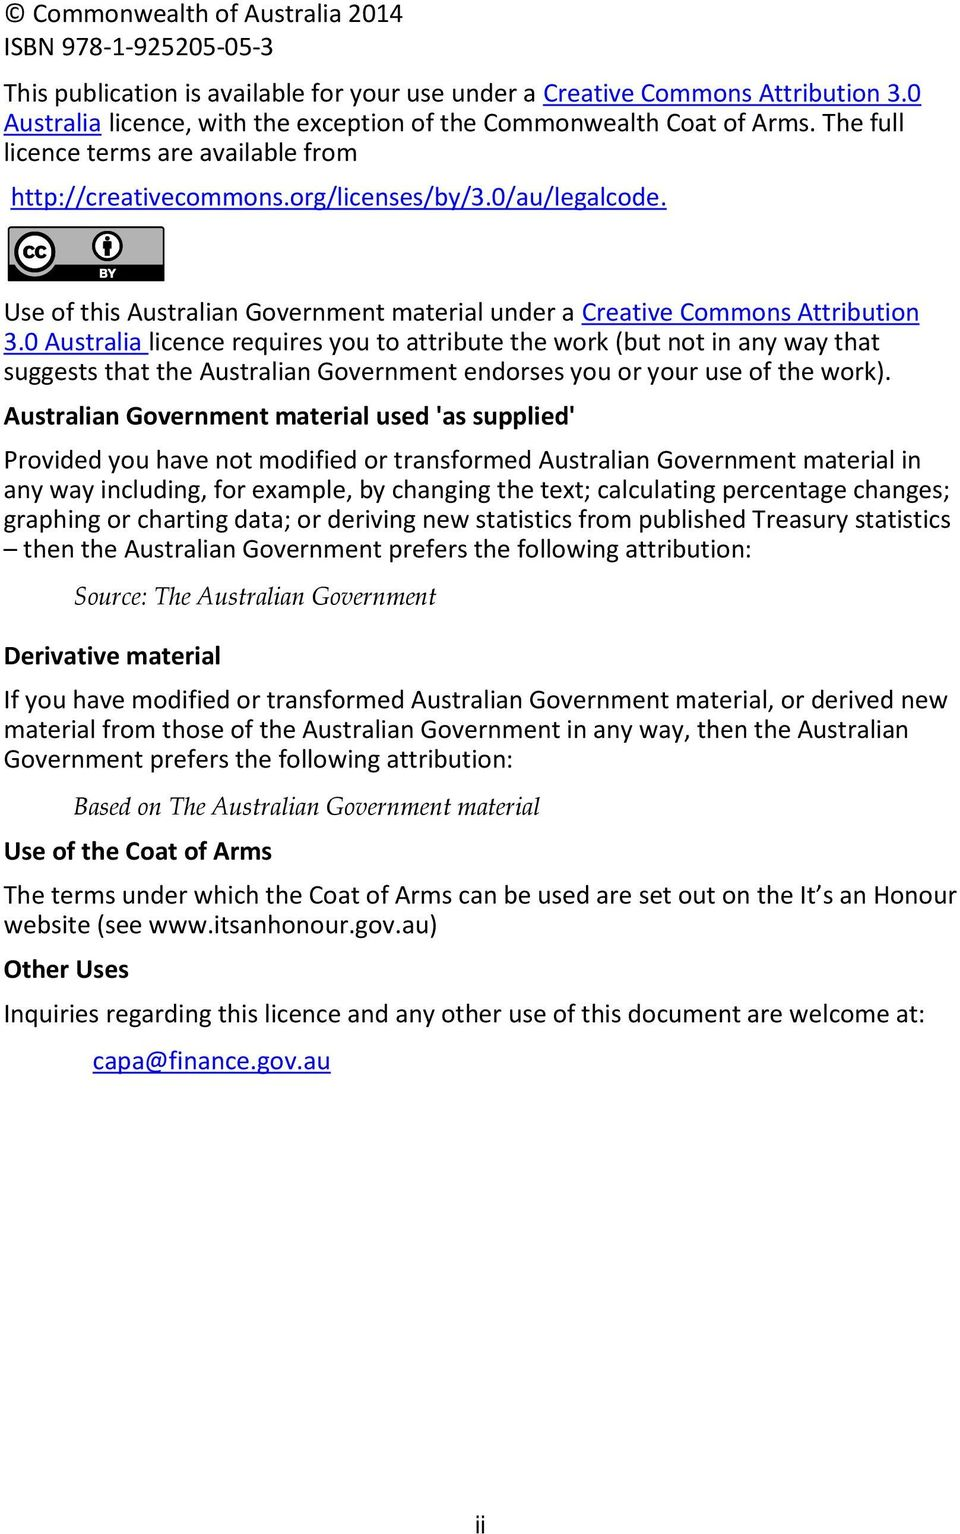 Use of this Australian Government material under a Creative Commons Attribution 3.